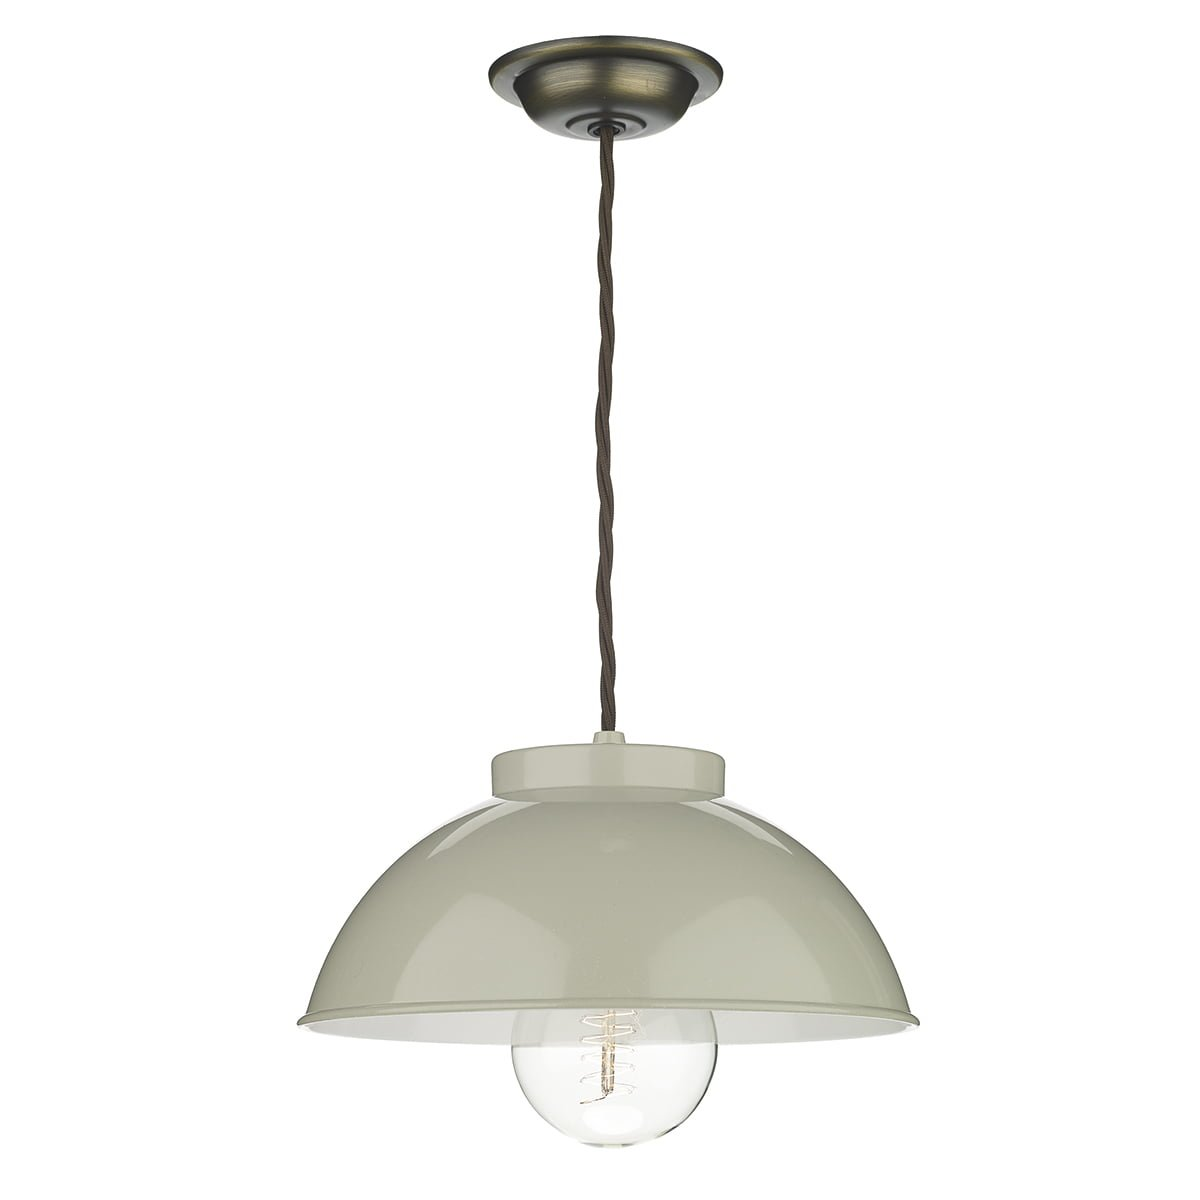 Dar COT012 Cotswold 1 Light Pendant in French Cream